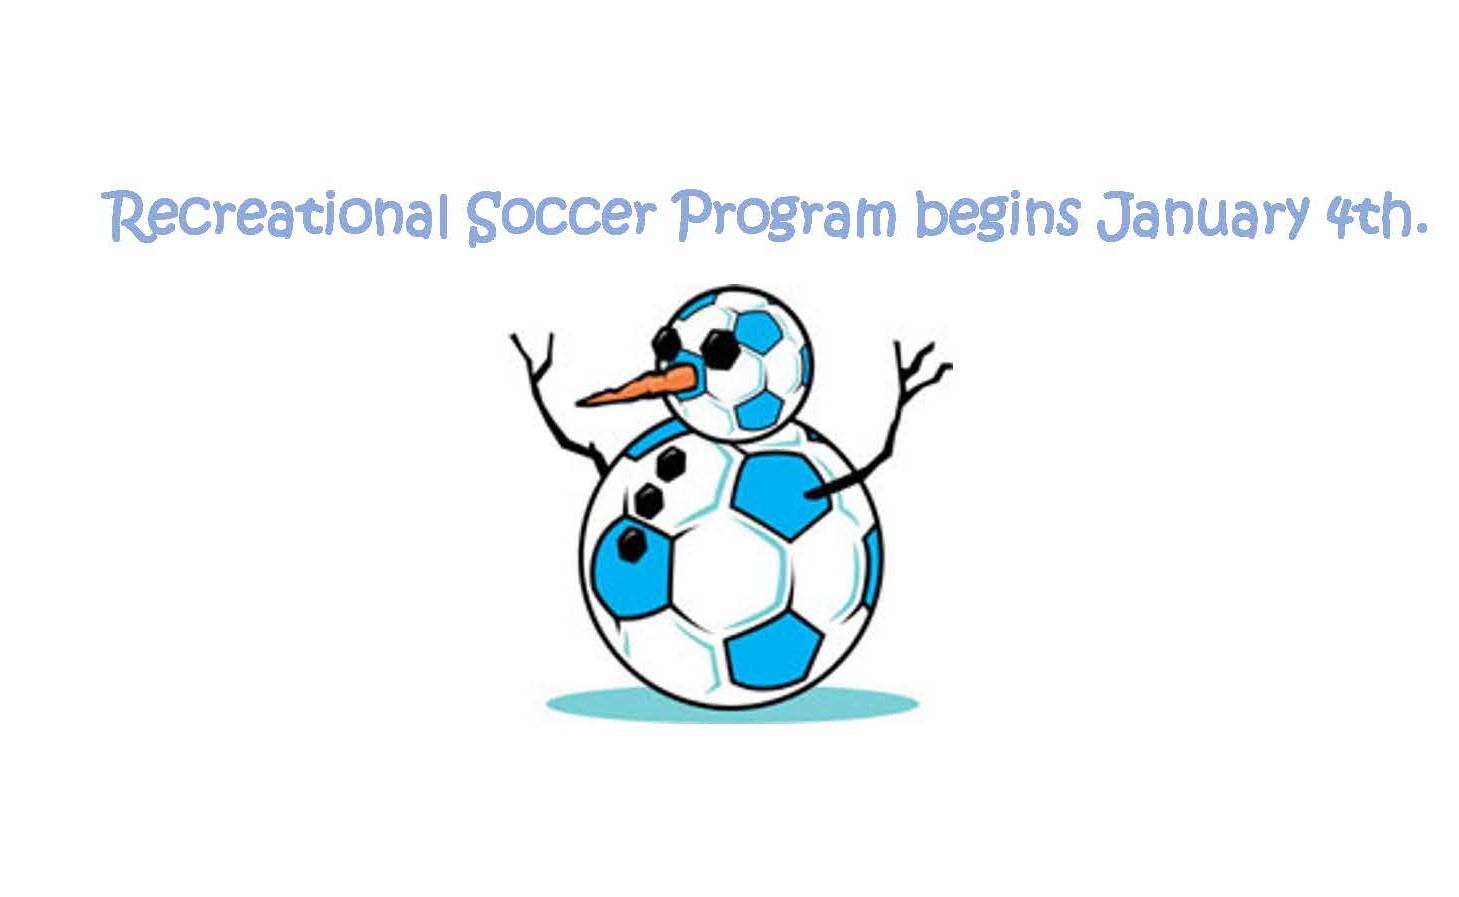 Recreational Soccer Program begins January 4th.